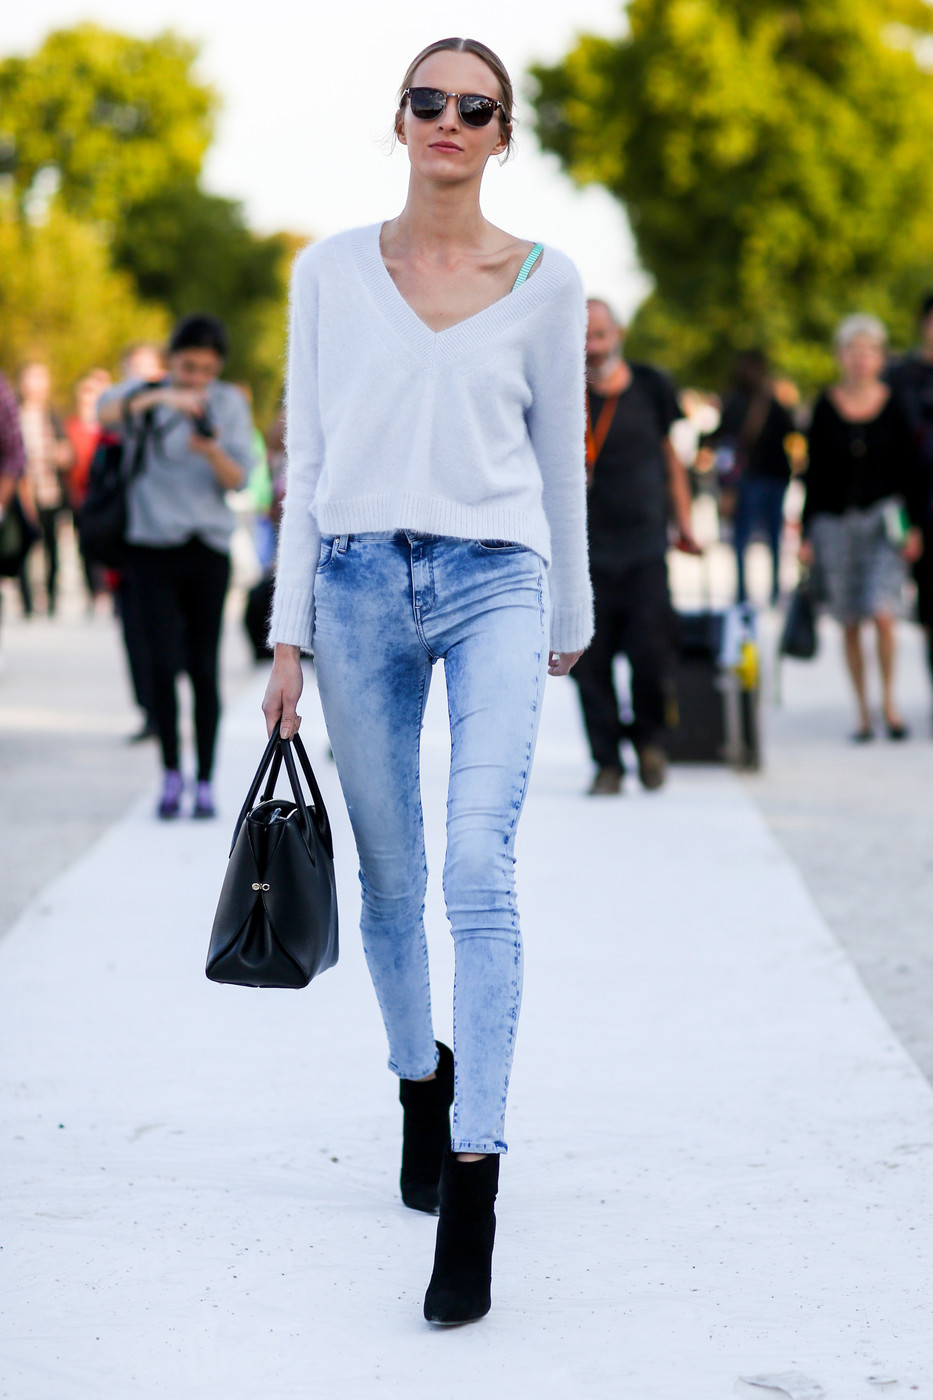 Cropped Sweater Best Street Style From Paris Fashion Week Spring 2015 Livingly